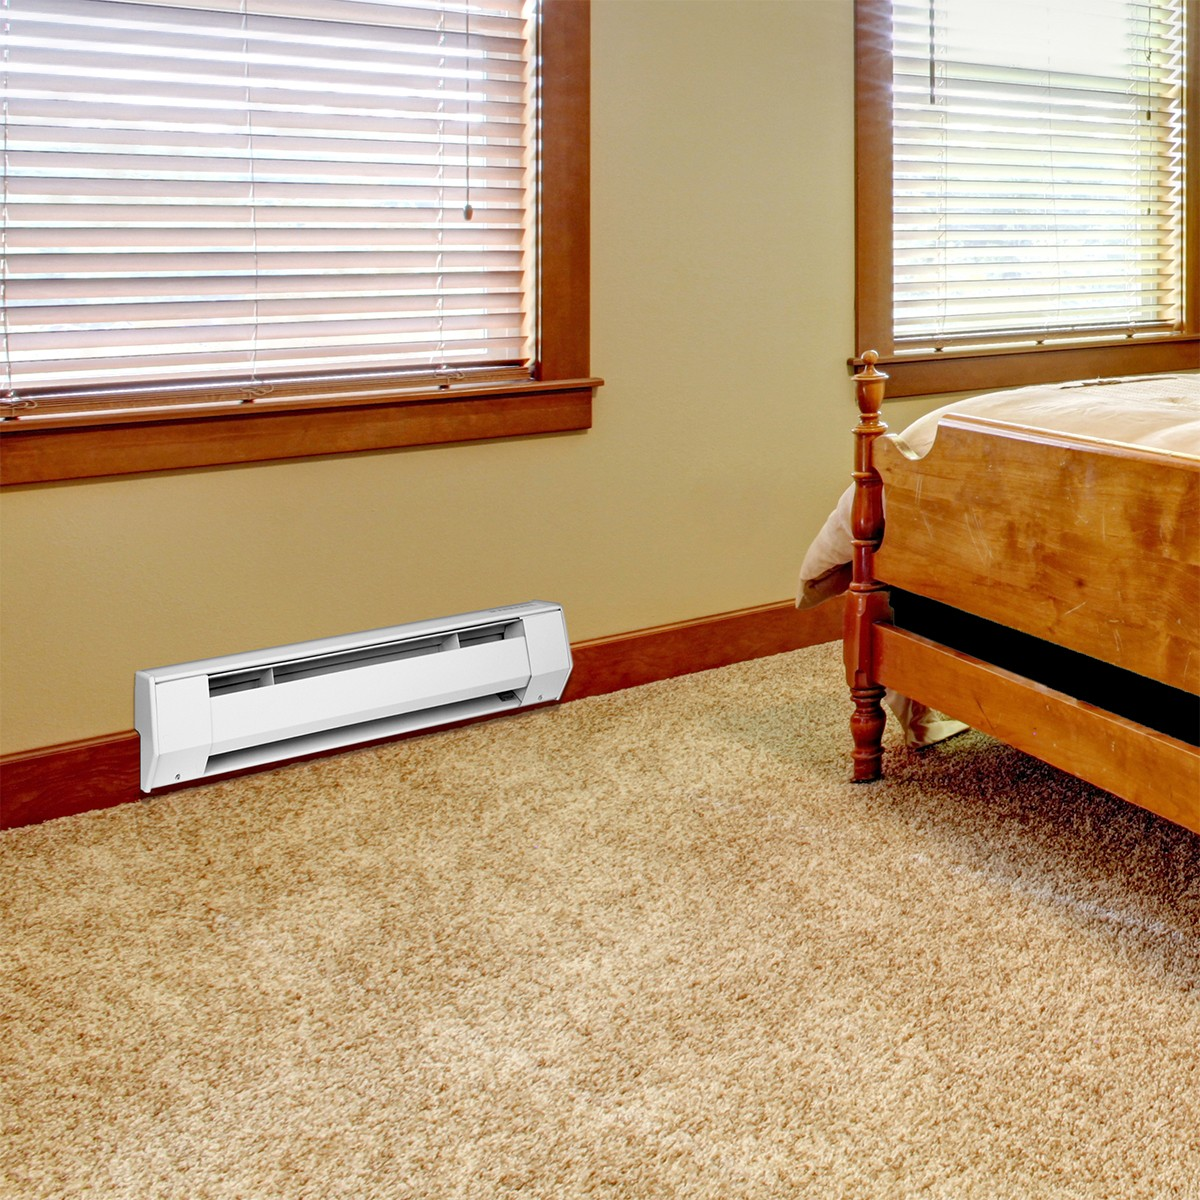 King Electric K Series 240 Volt Electric Baseboard Heaters Sylvane